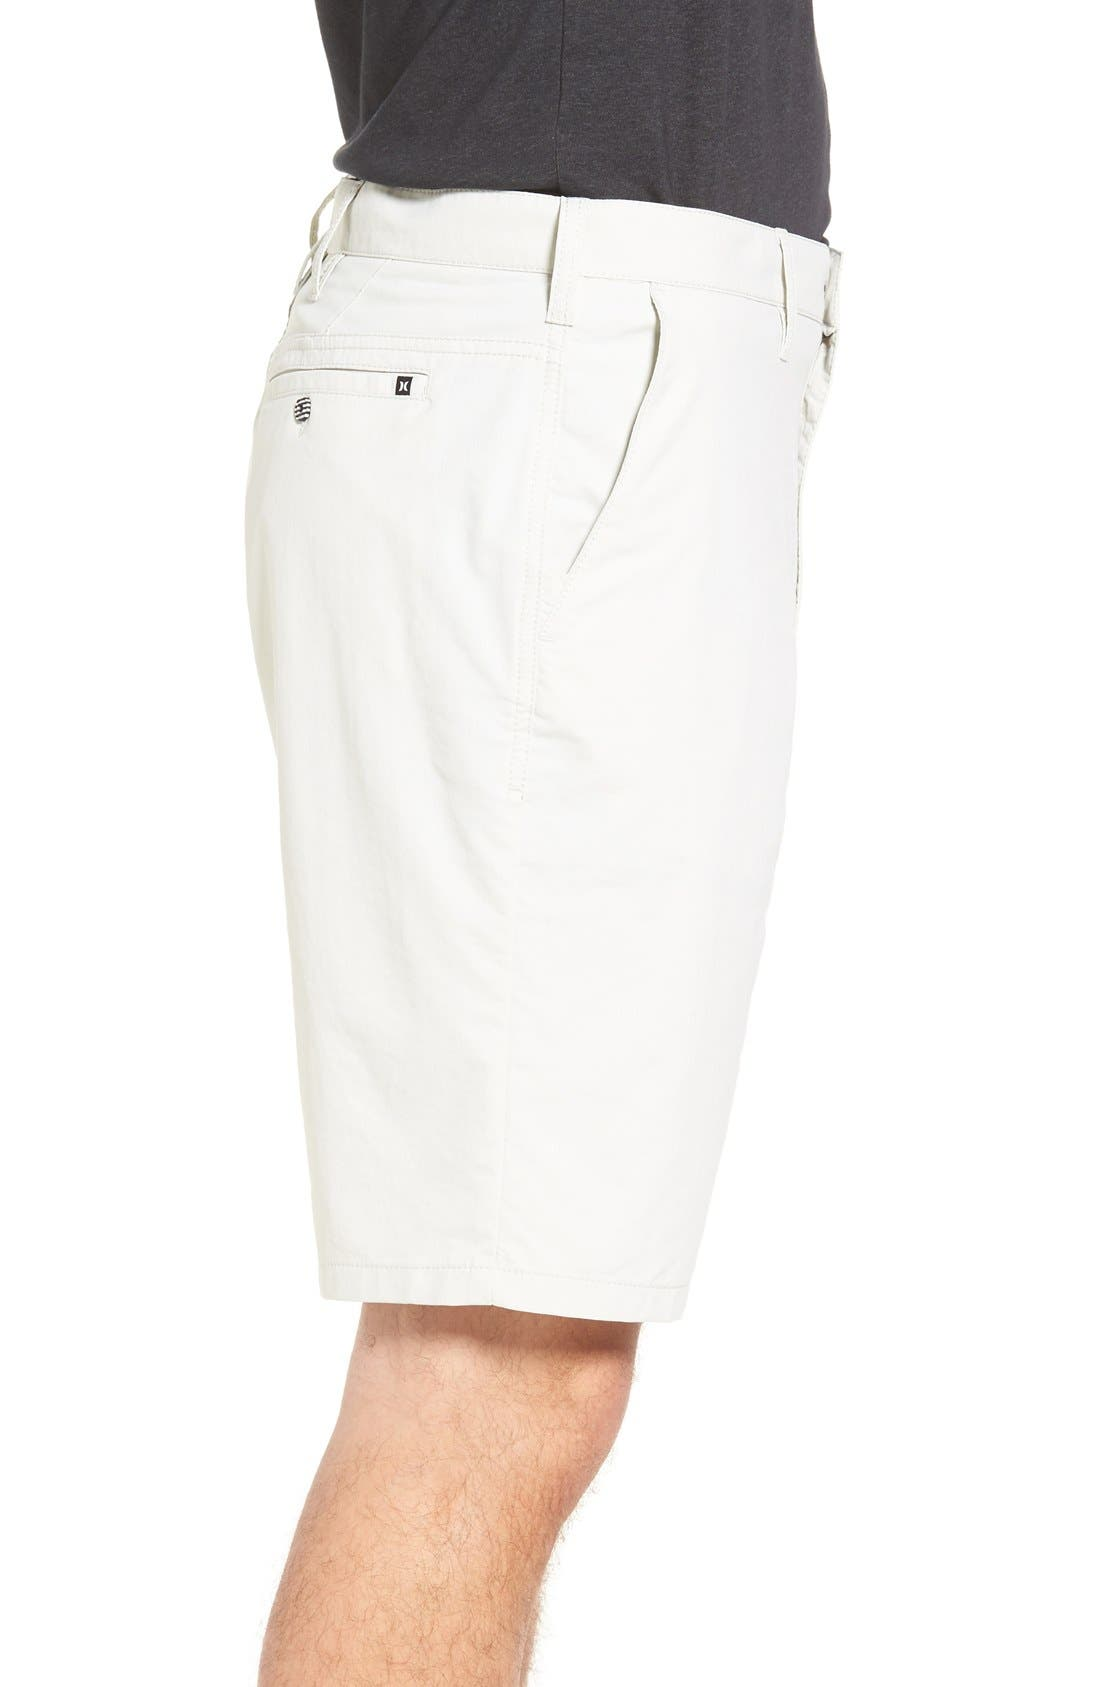 'Dry Out' Dri-FIT<sup>™</sup> Chino Shorts,                             Alternate thumbnail 149, color,